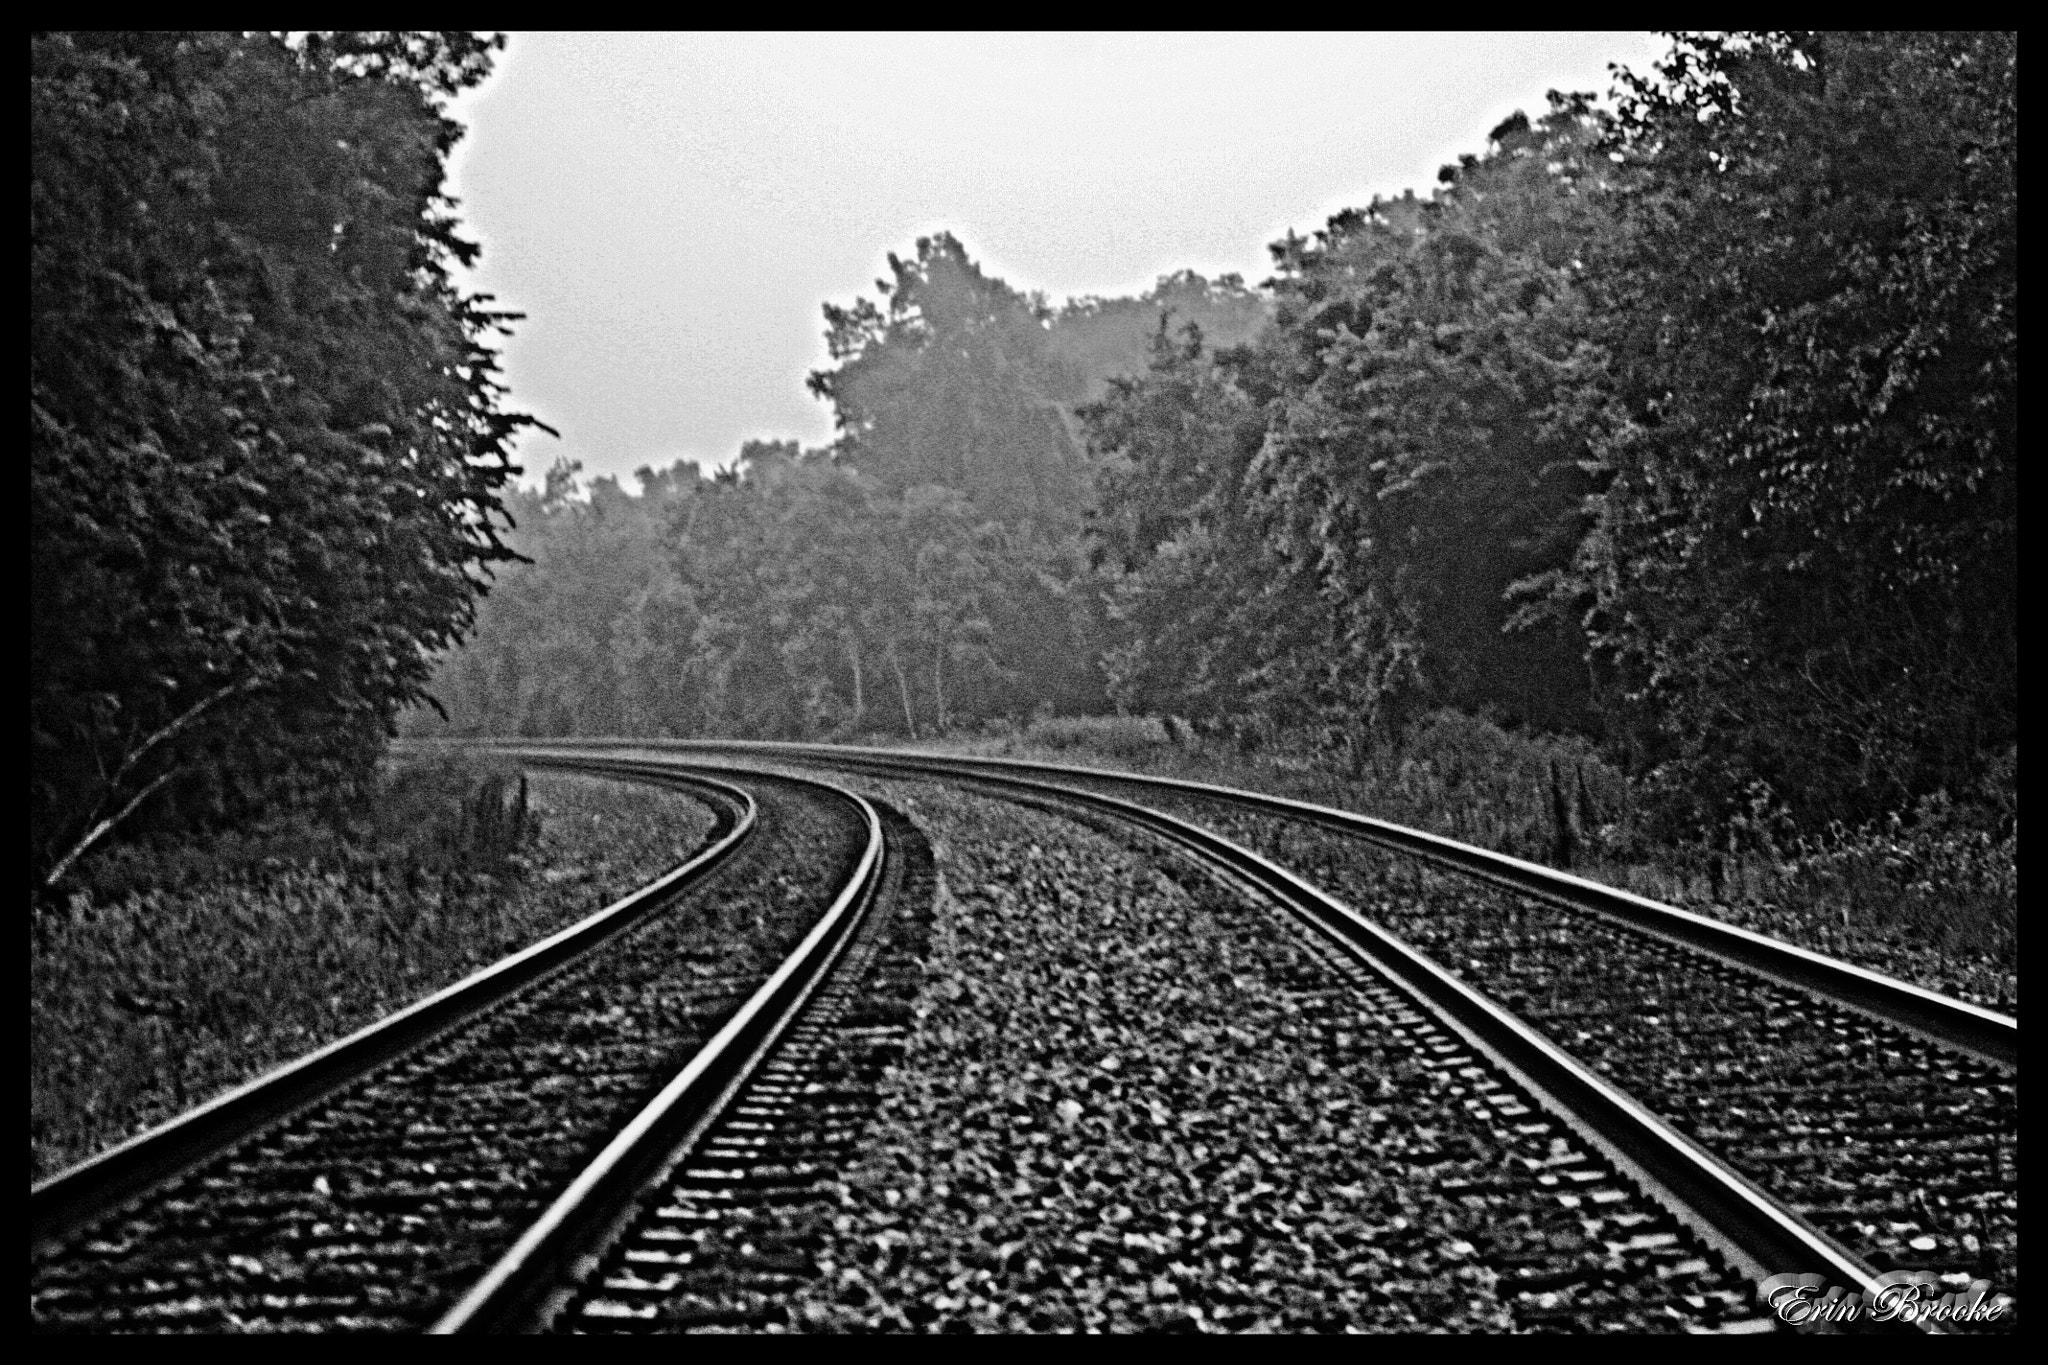 Photograph Follow the tracks by Erin Brooke on 500px